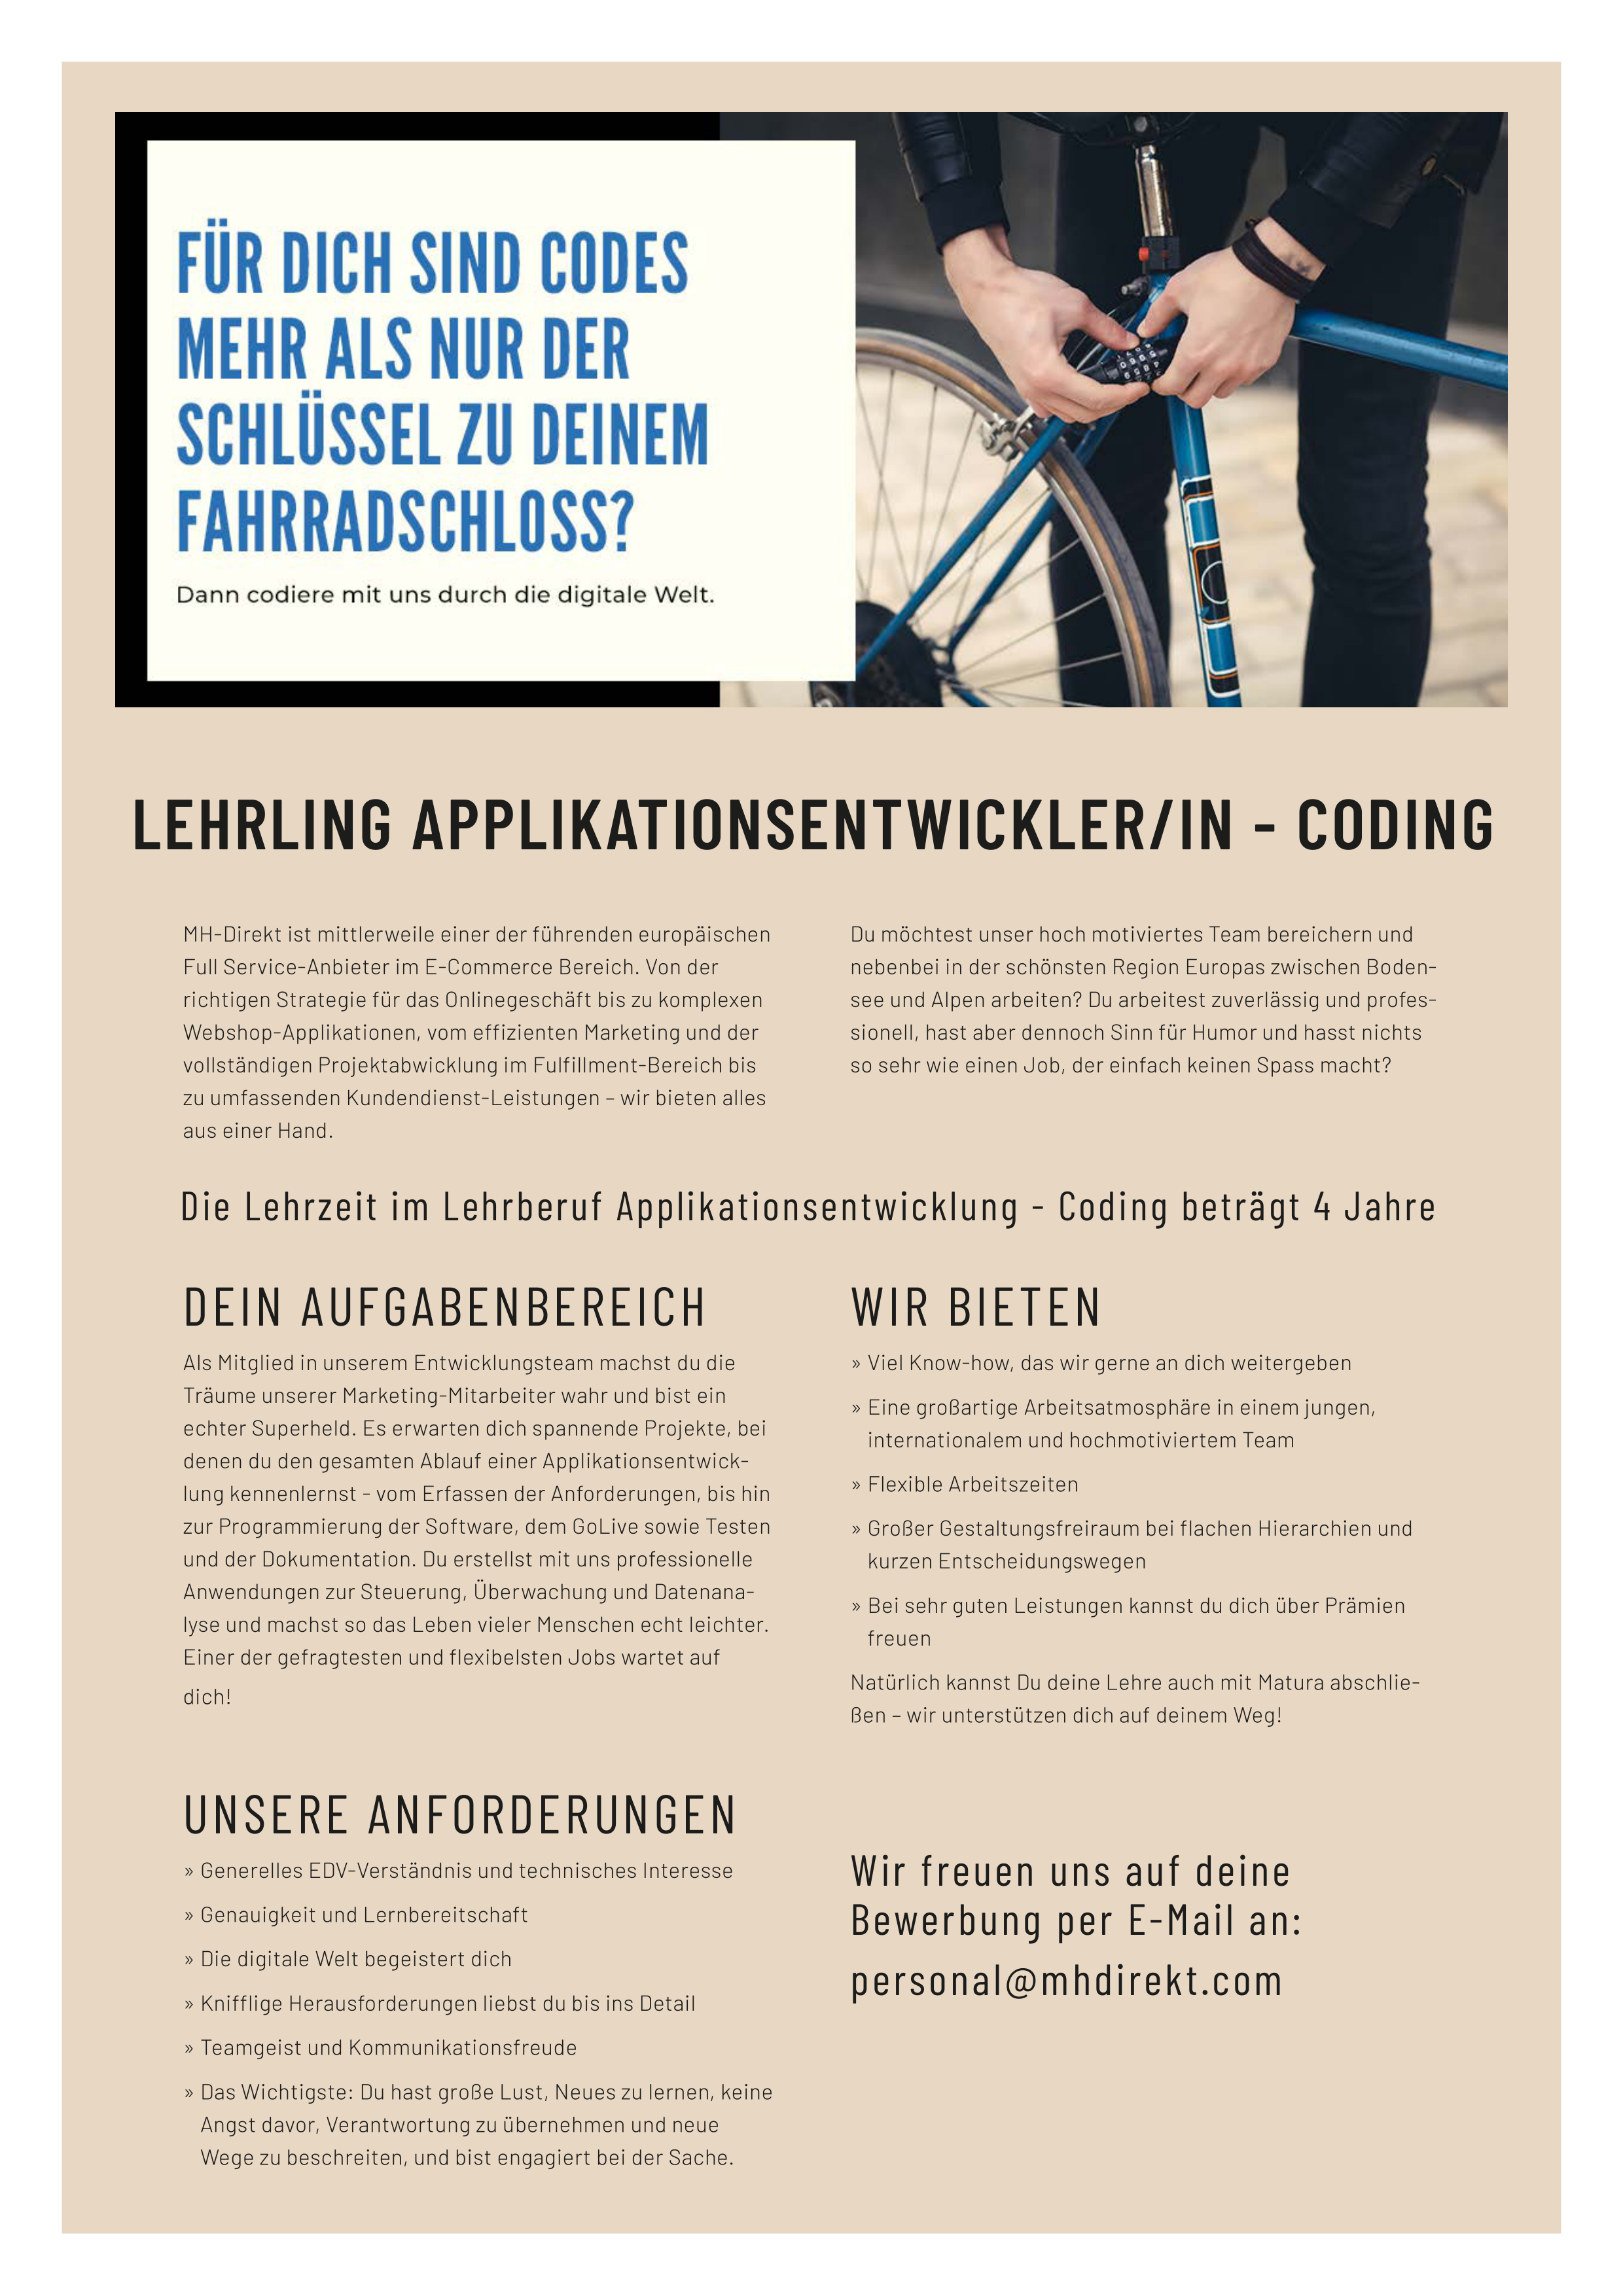 Lehrling Applikationsentwickler/in - Coding